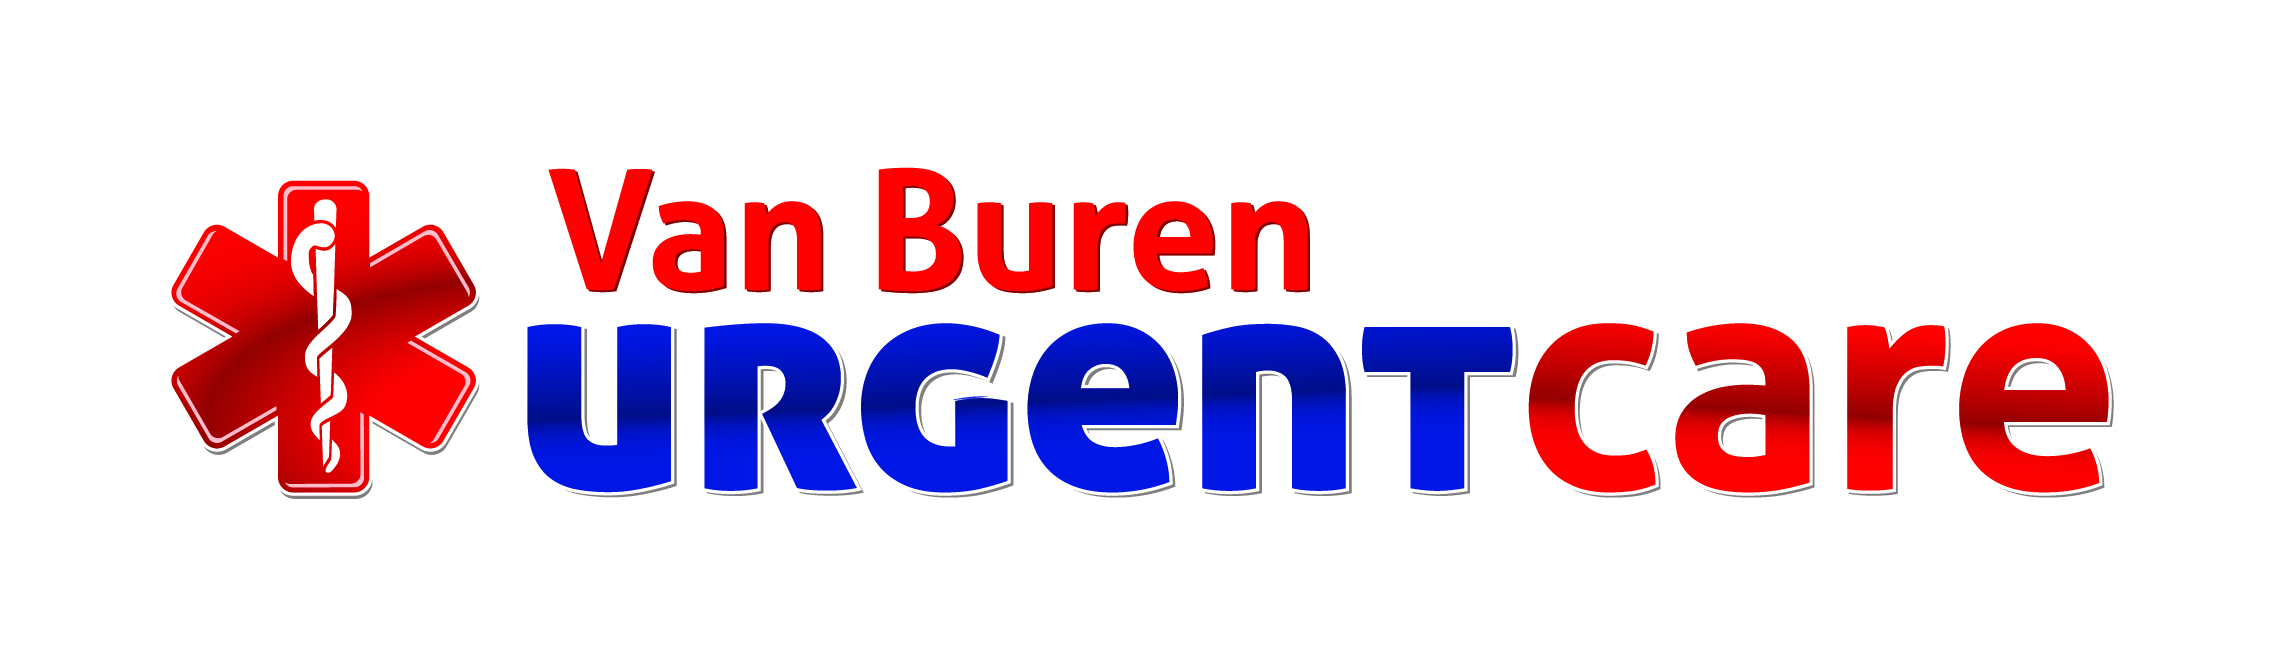 Van Buren Urgent Care Center